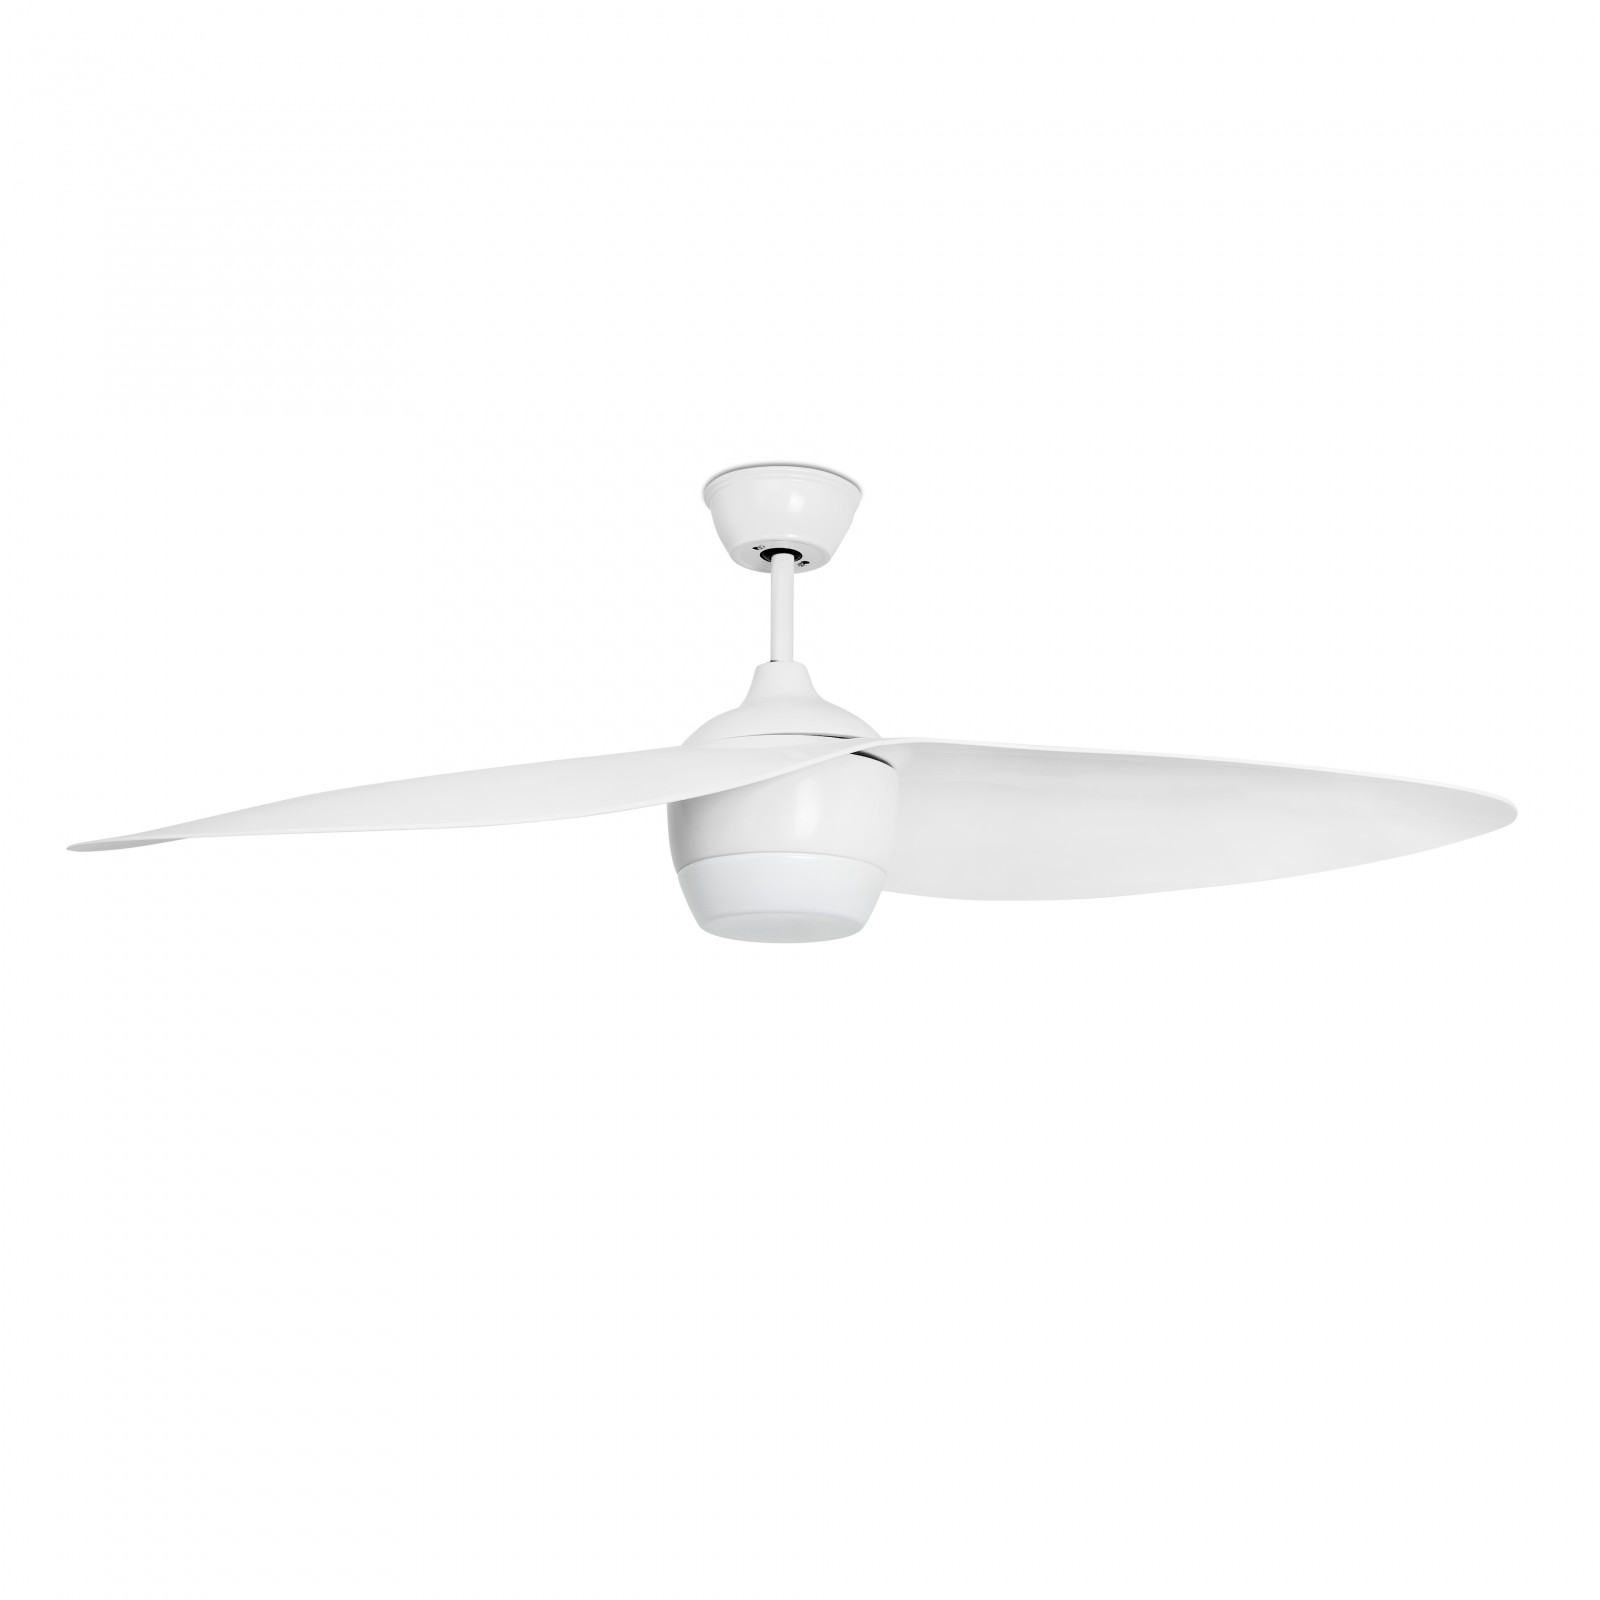 led w light white ge pictures ceiling daylight uses a base harbor best for lamp bulb bulbs small fan breeze ceilings with favorite reveal equivalent fans frost candelabra